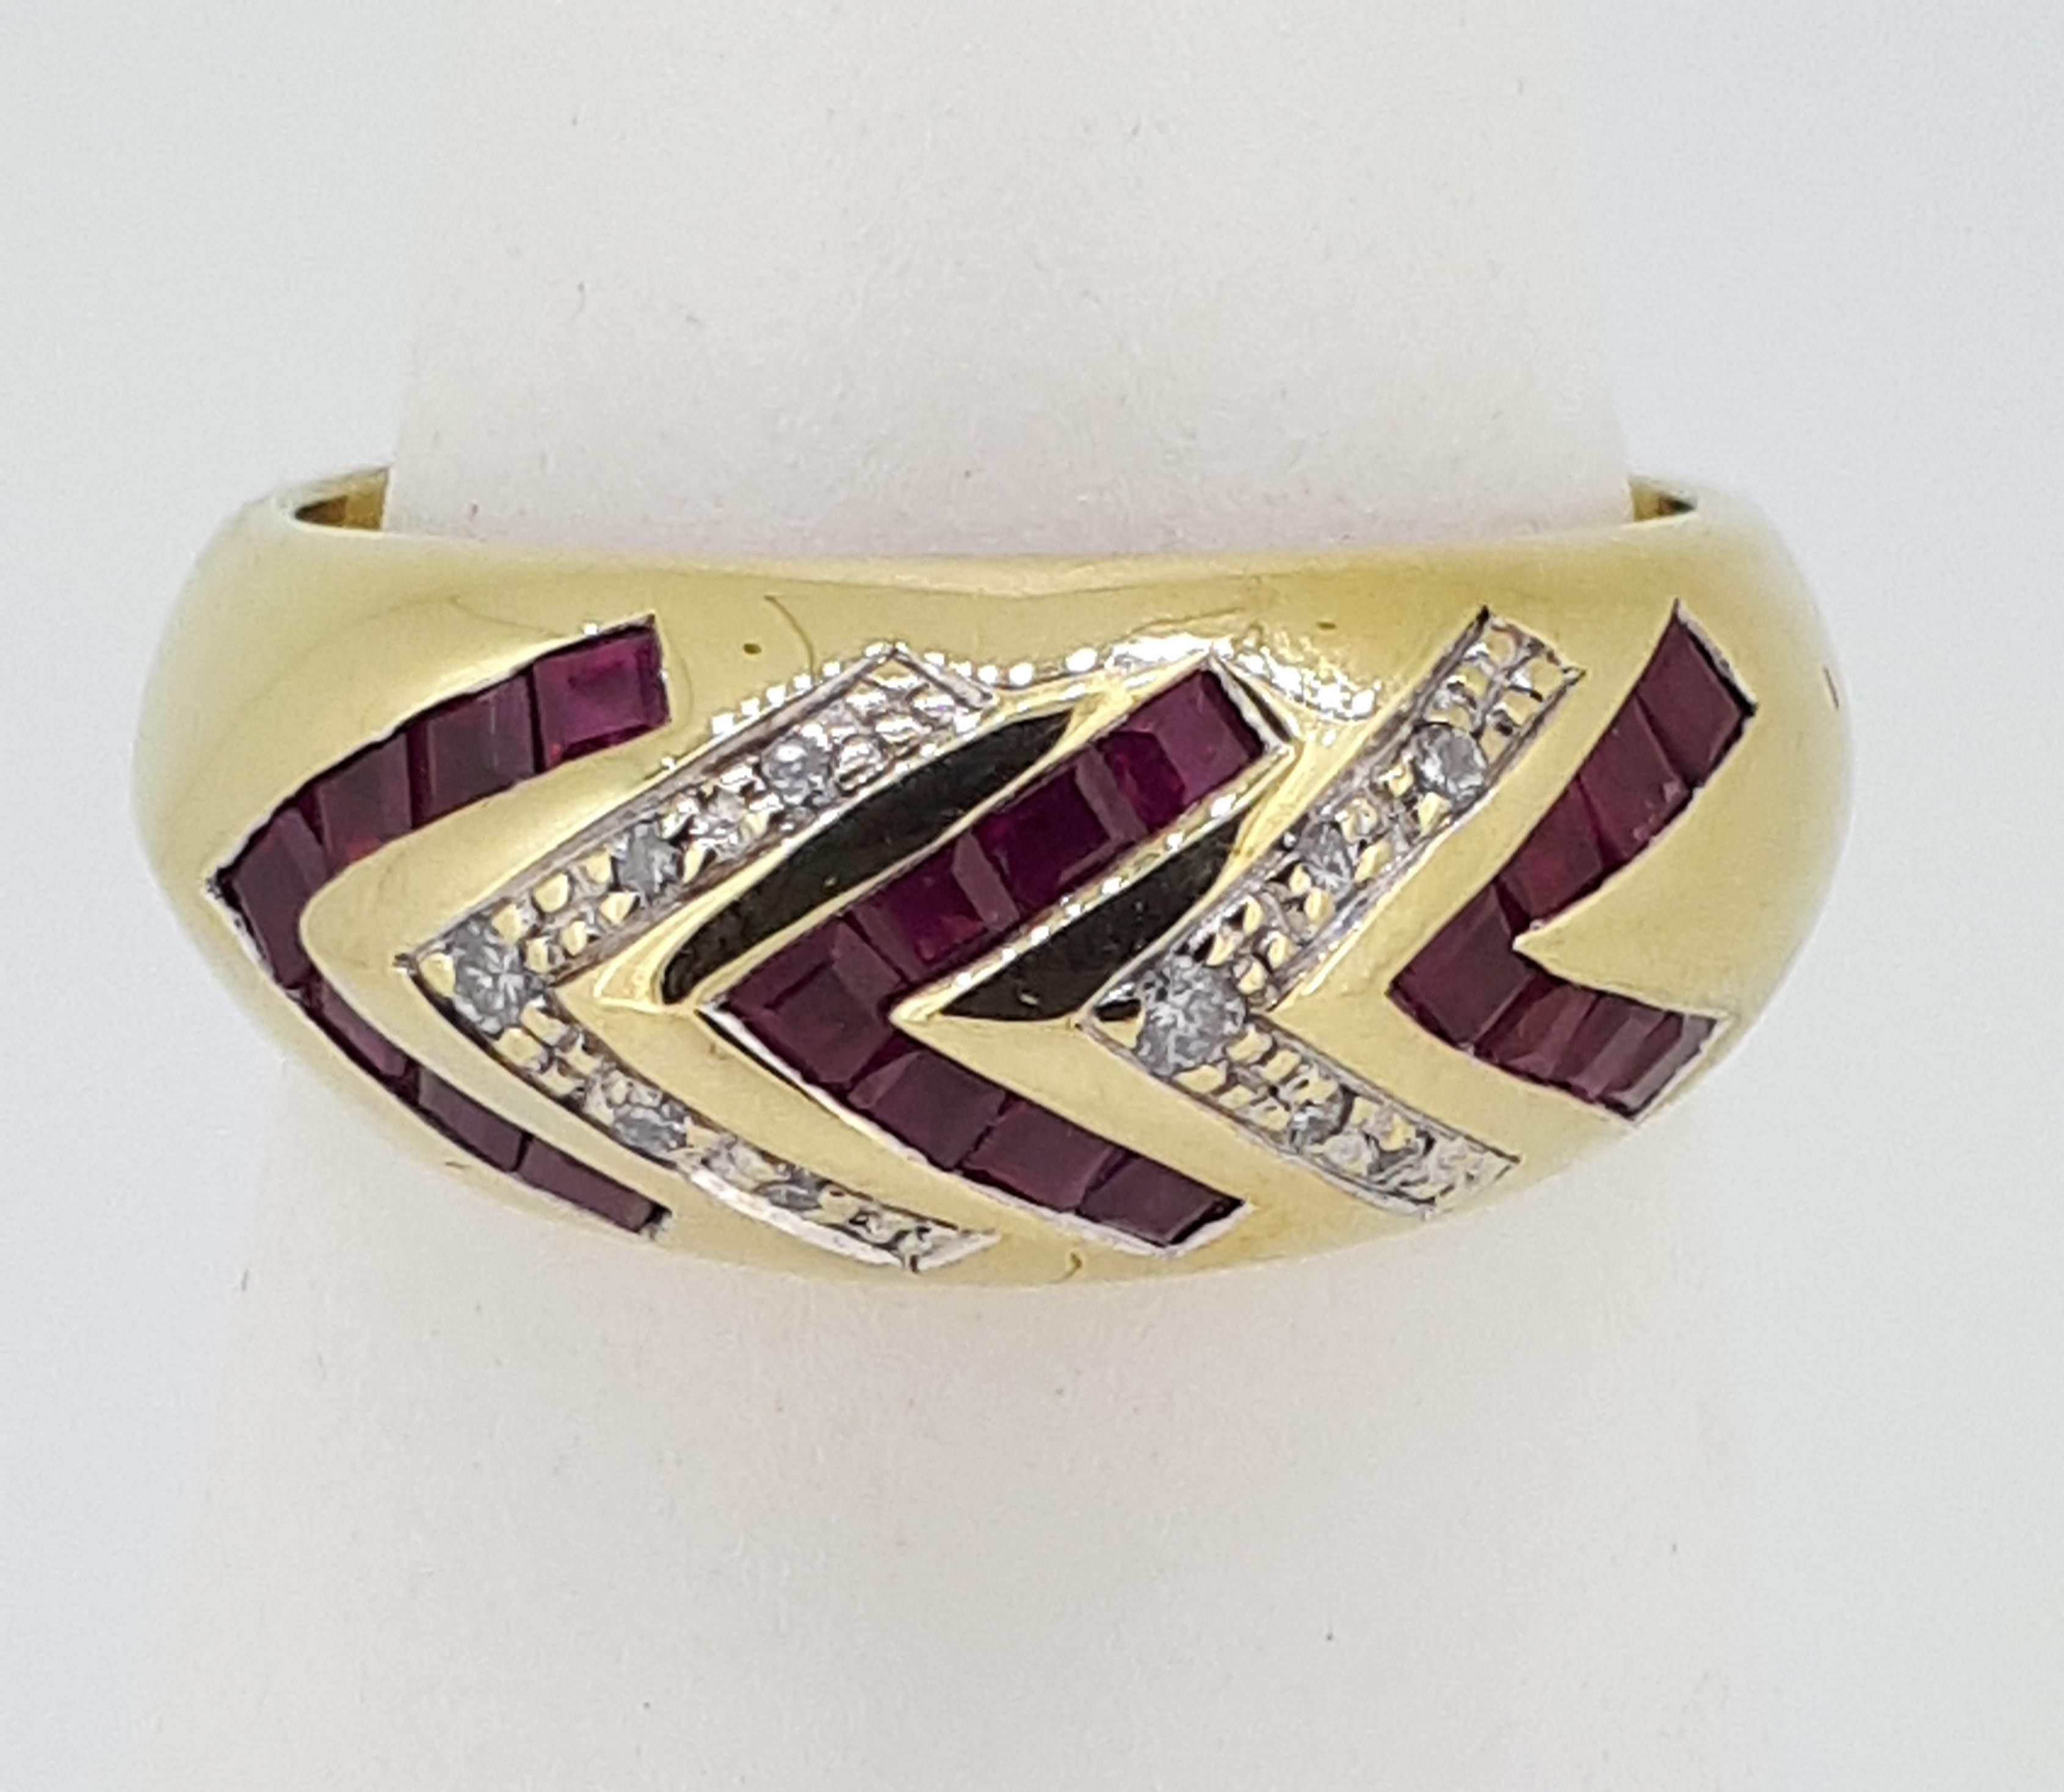 18ct (750) yellow Gold Ruby & Diamond Heavy Ring - Image 3 of 5